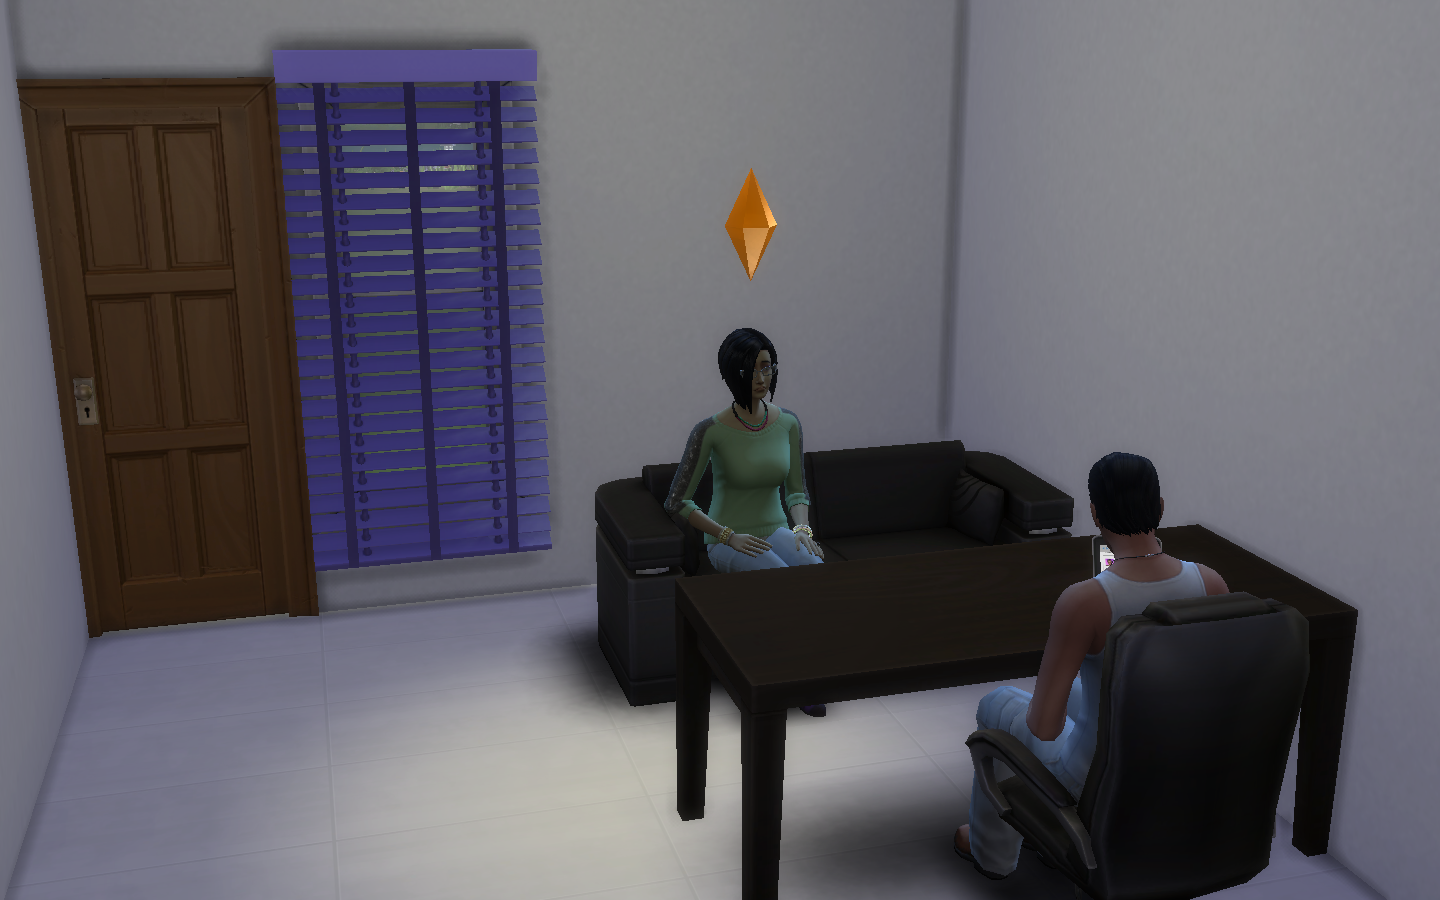 No, Sims Players. Stahp.